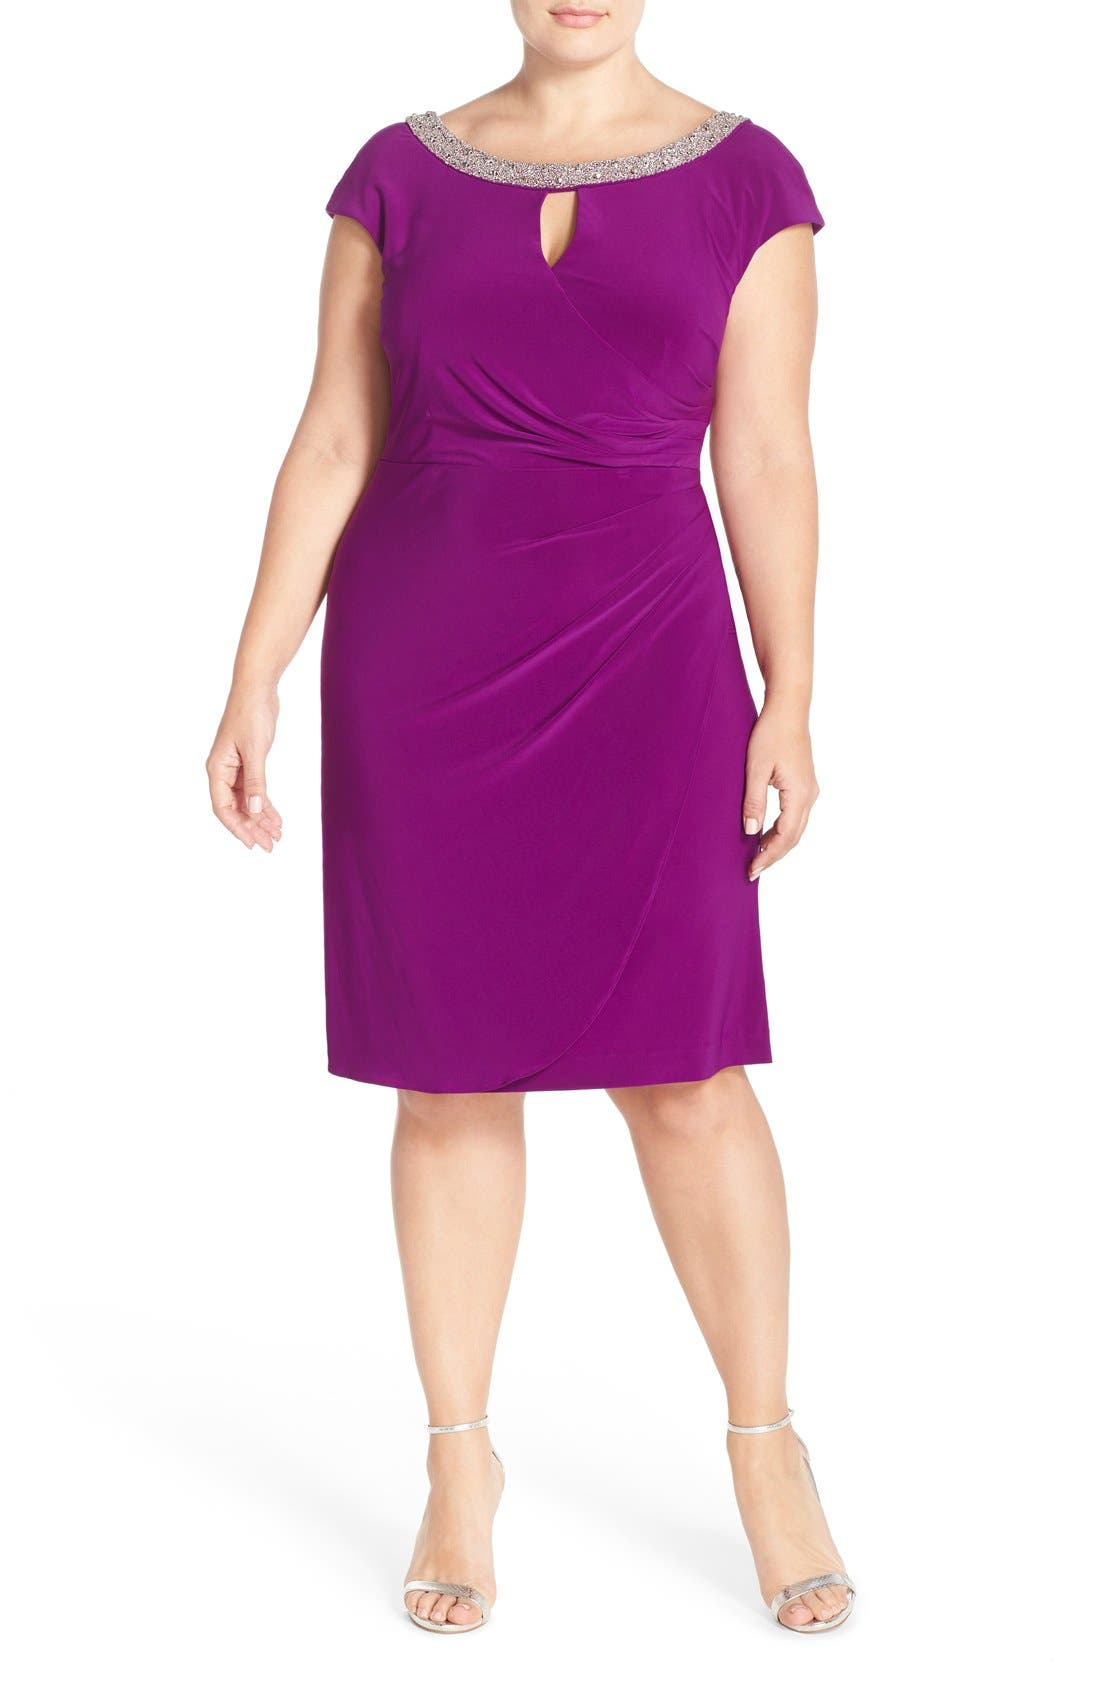 Alternate Image 1 Selected - Alex Evenings Beaded Matte Jersey Sheath Dress (Plus Size)